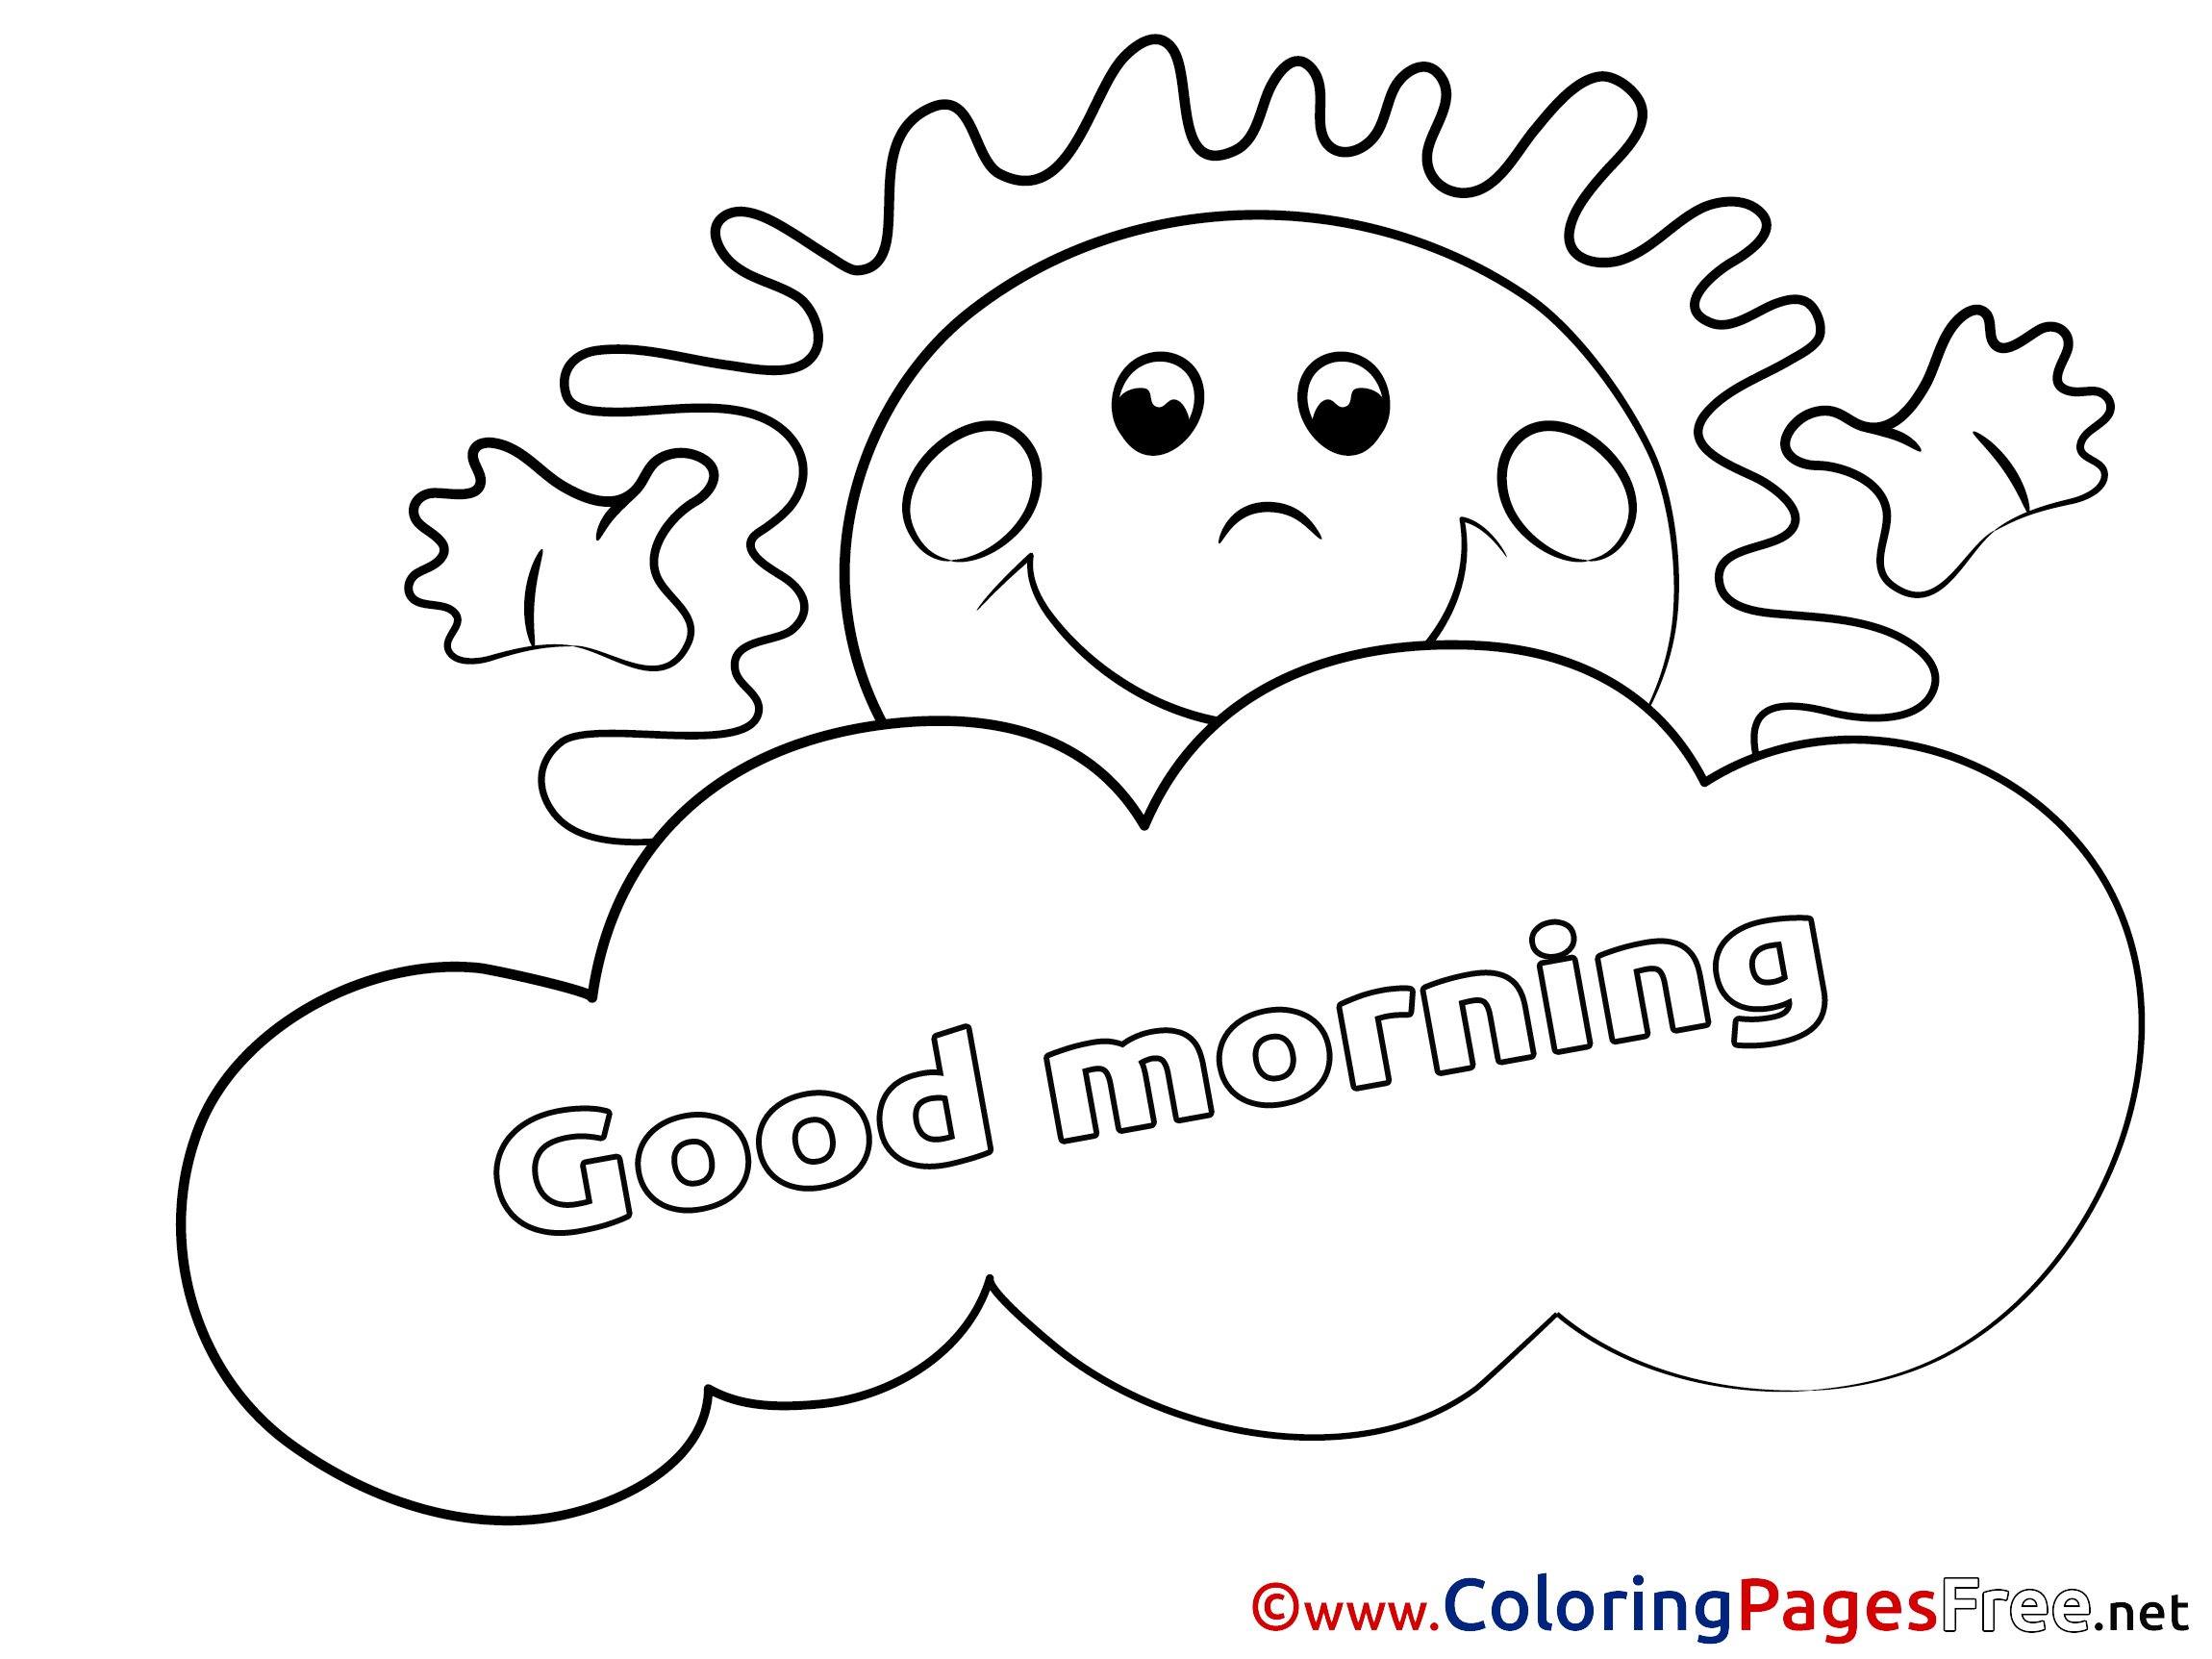 Sun Coloring Pages Good Morning For Free